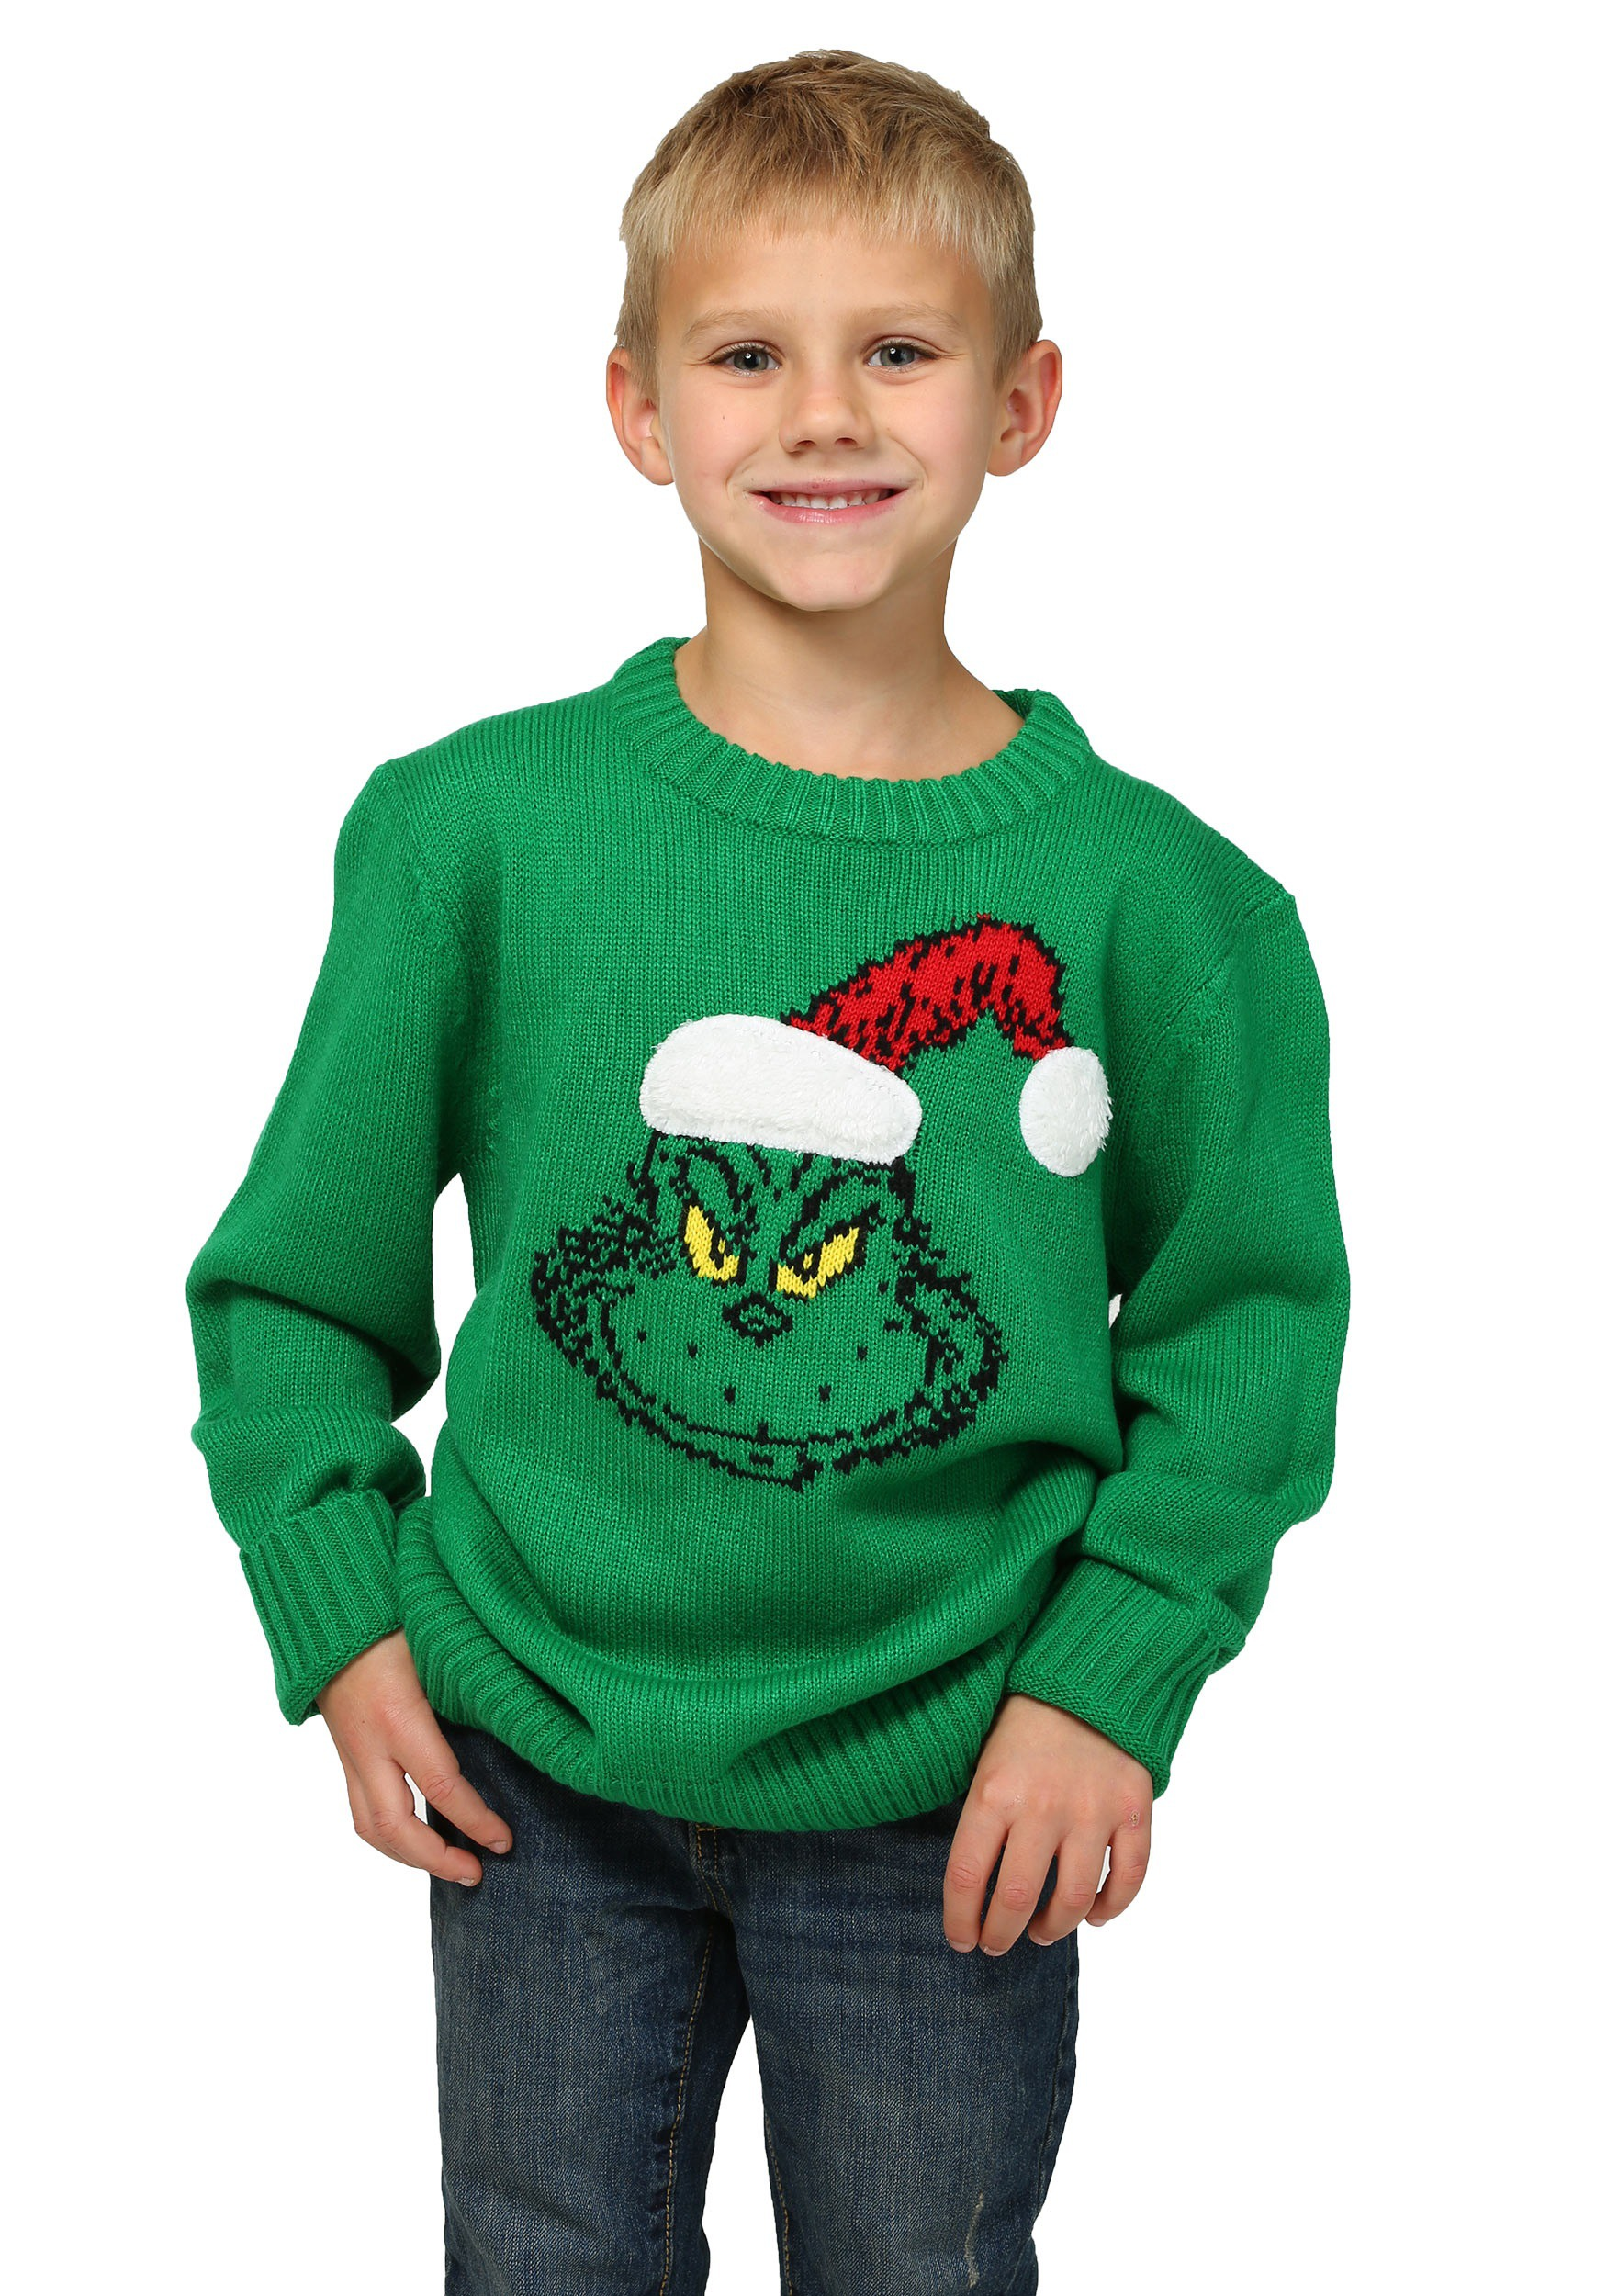 How The Grinch Stole Christmas Boys Ugly Sweater